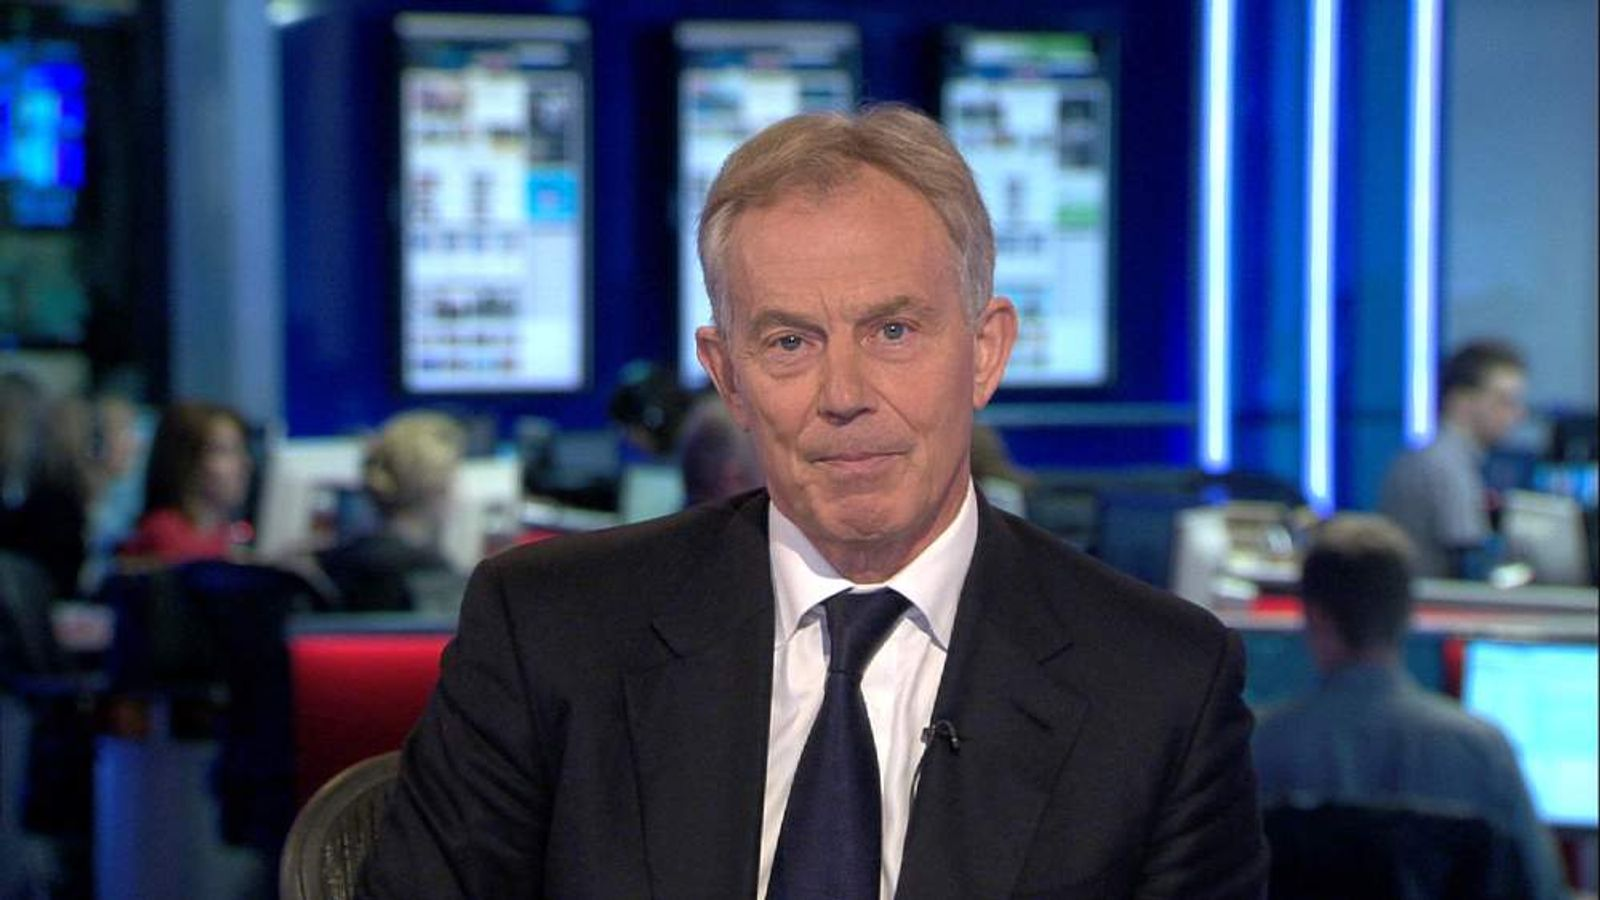 Tony Blair speaks to Sky News